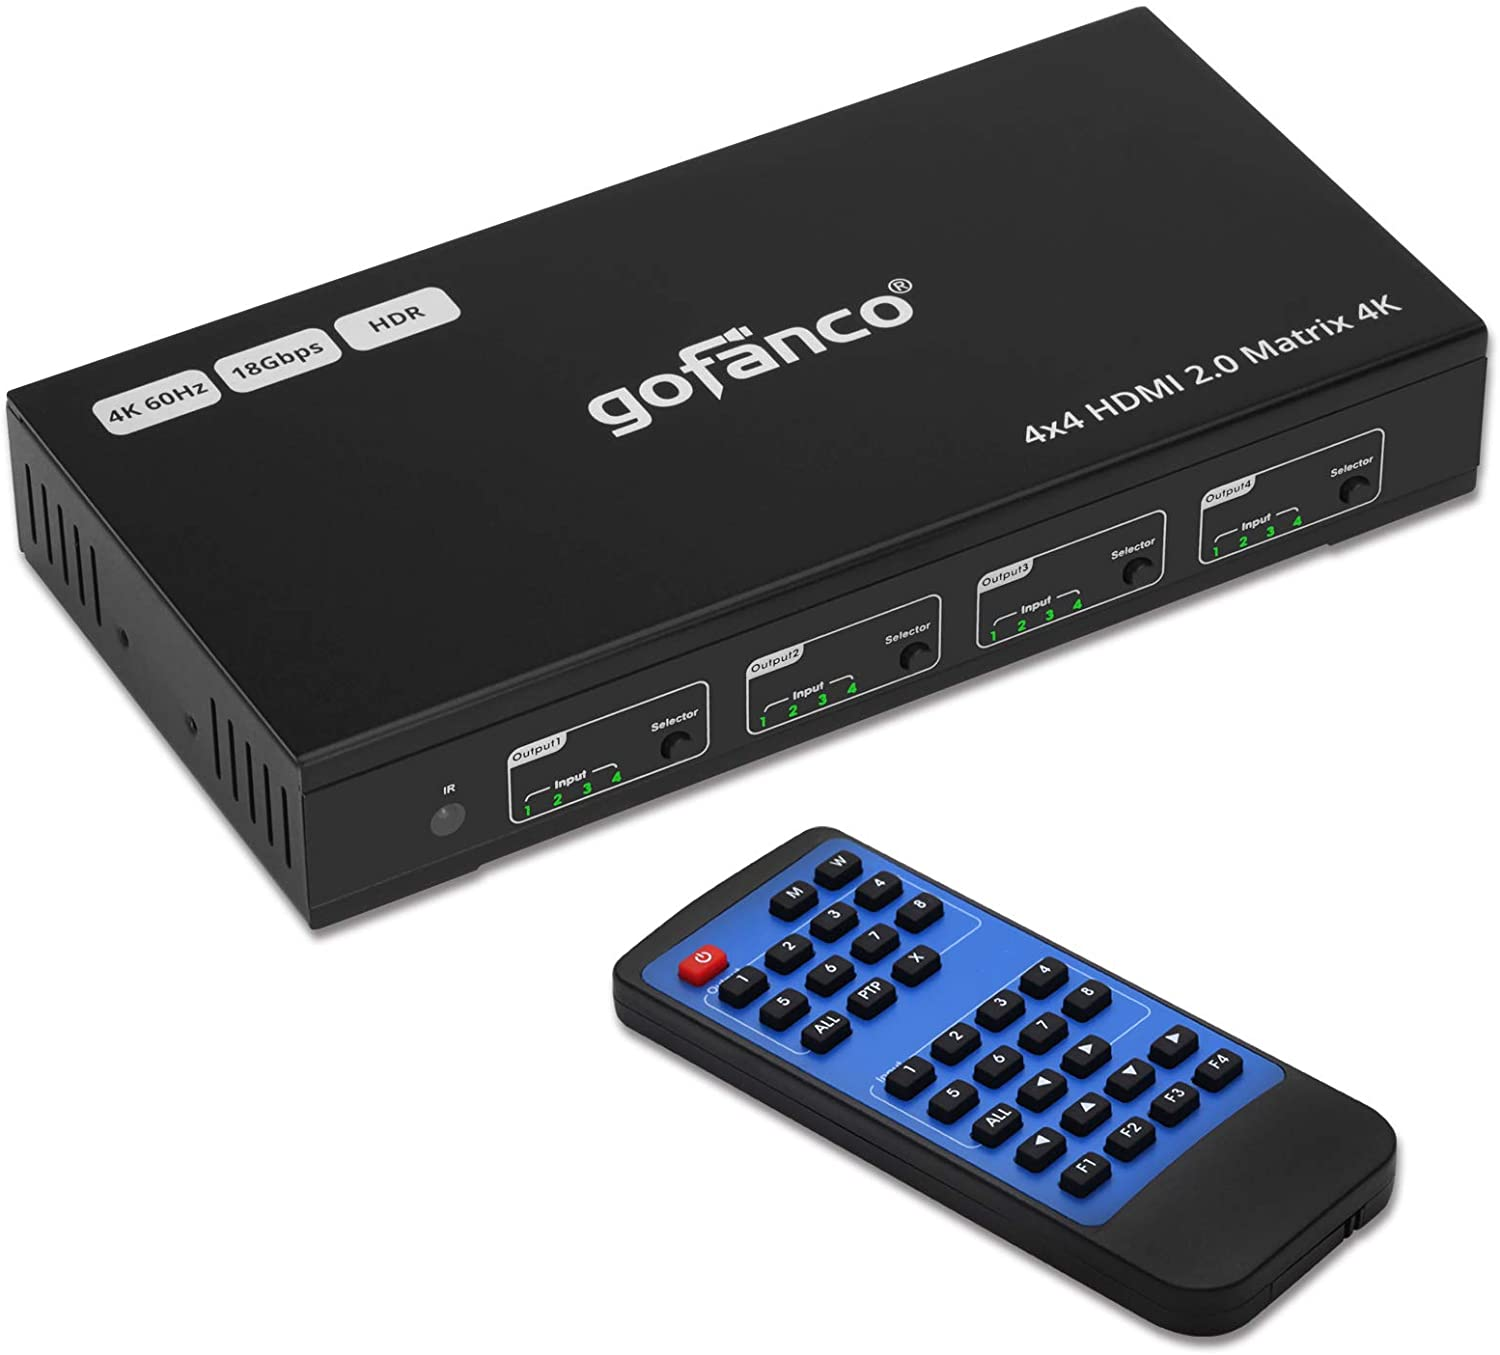 gofanco 4x4 HDMI 2.0 Matrix Switcher W/IR Remote & Web GUI Control - (4K 60Hz YUV 4:4:4, HDR) - HDMI 2.0, HDCP 2.2/1.4, SPDIF Audio Output Extractor, 18Gbps, EDID, RS-232, 4 In 4 Out Video